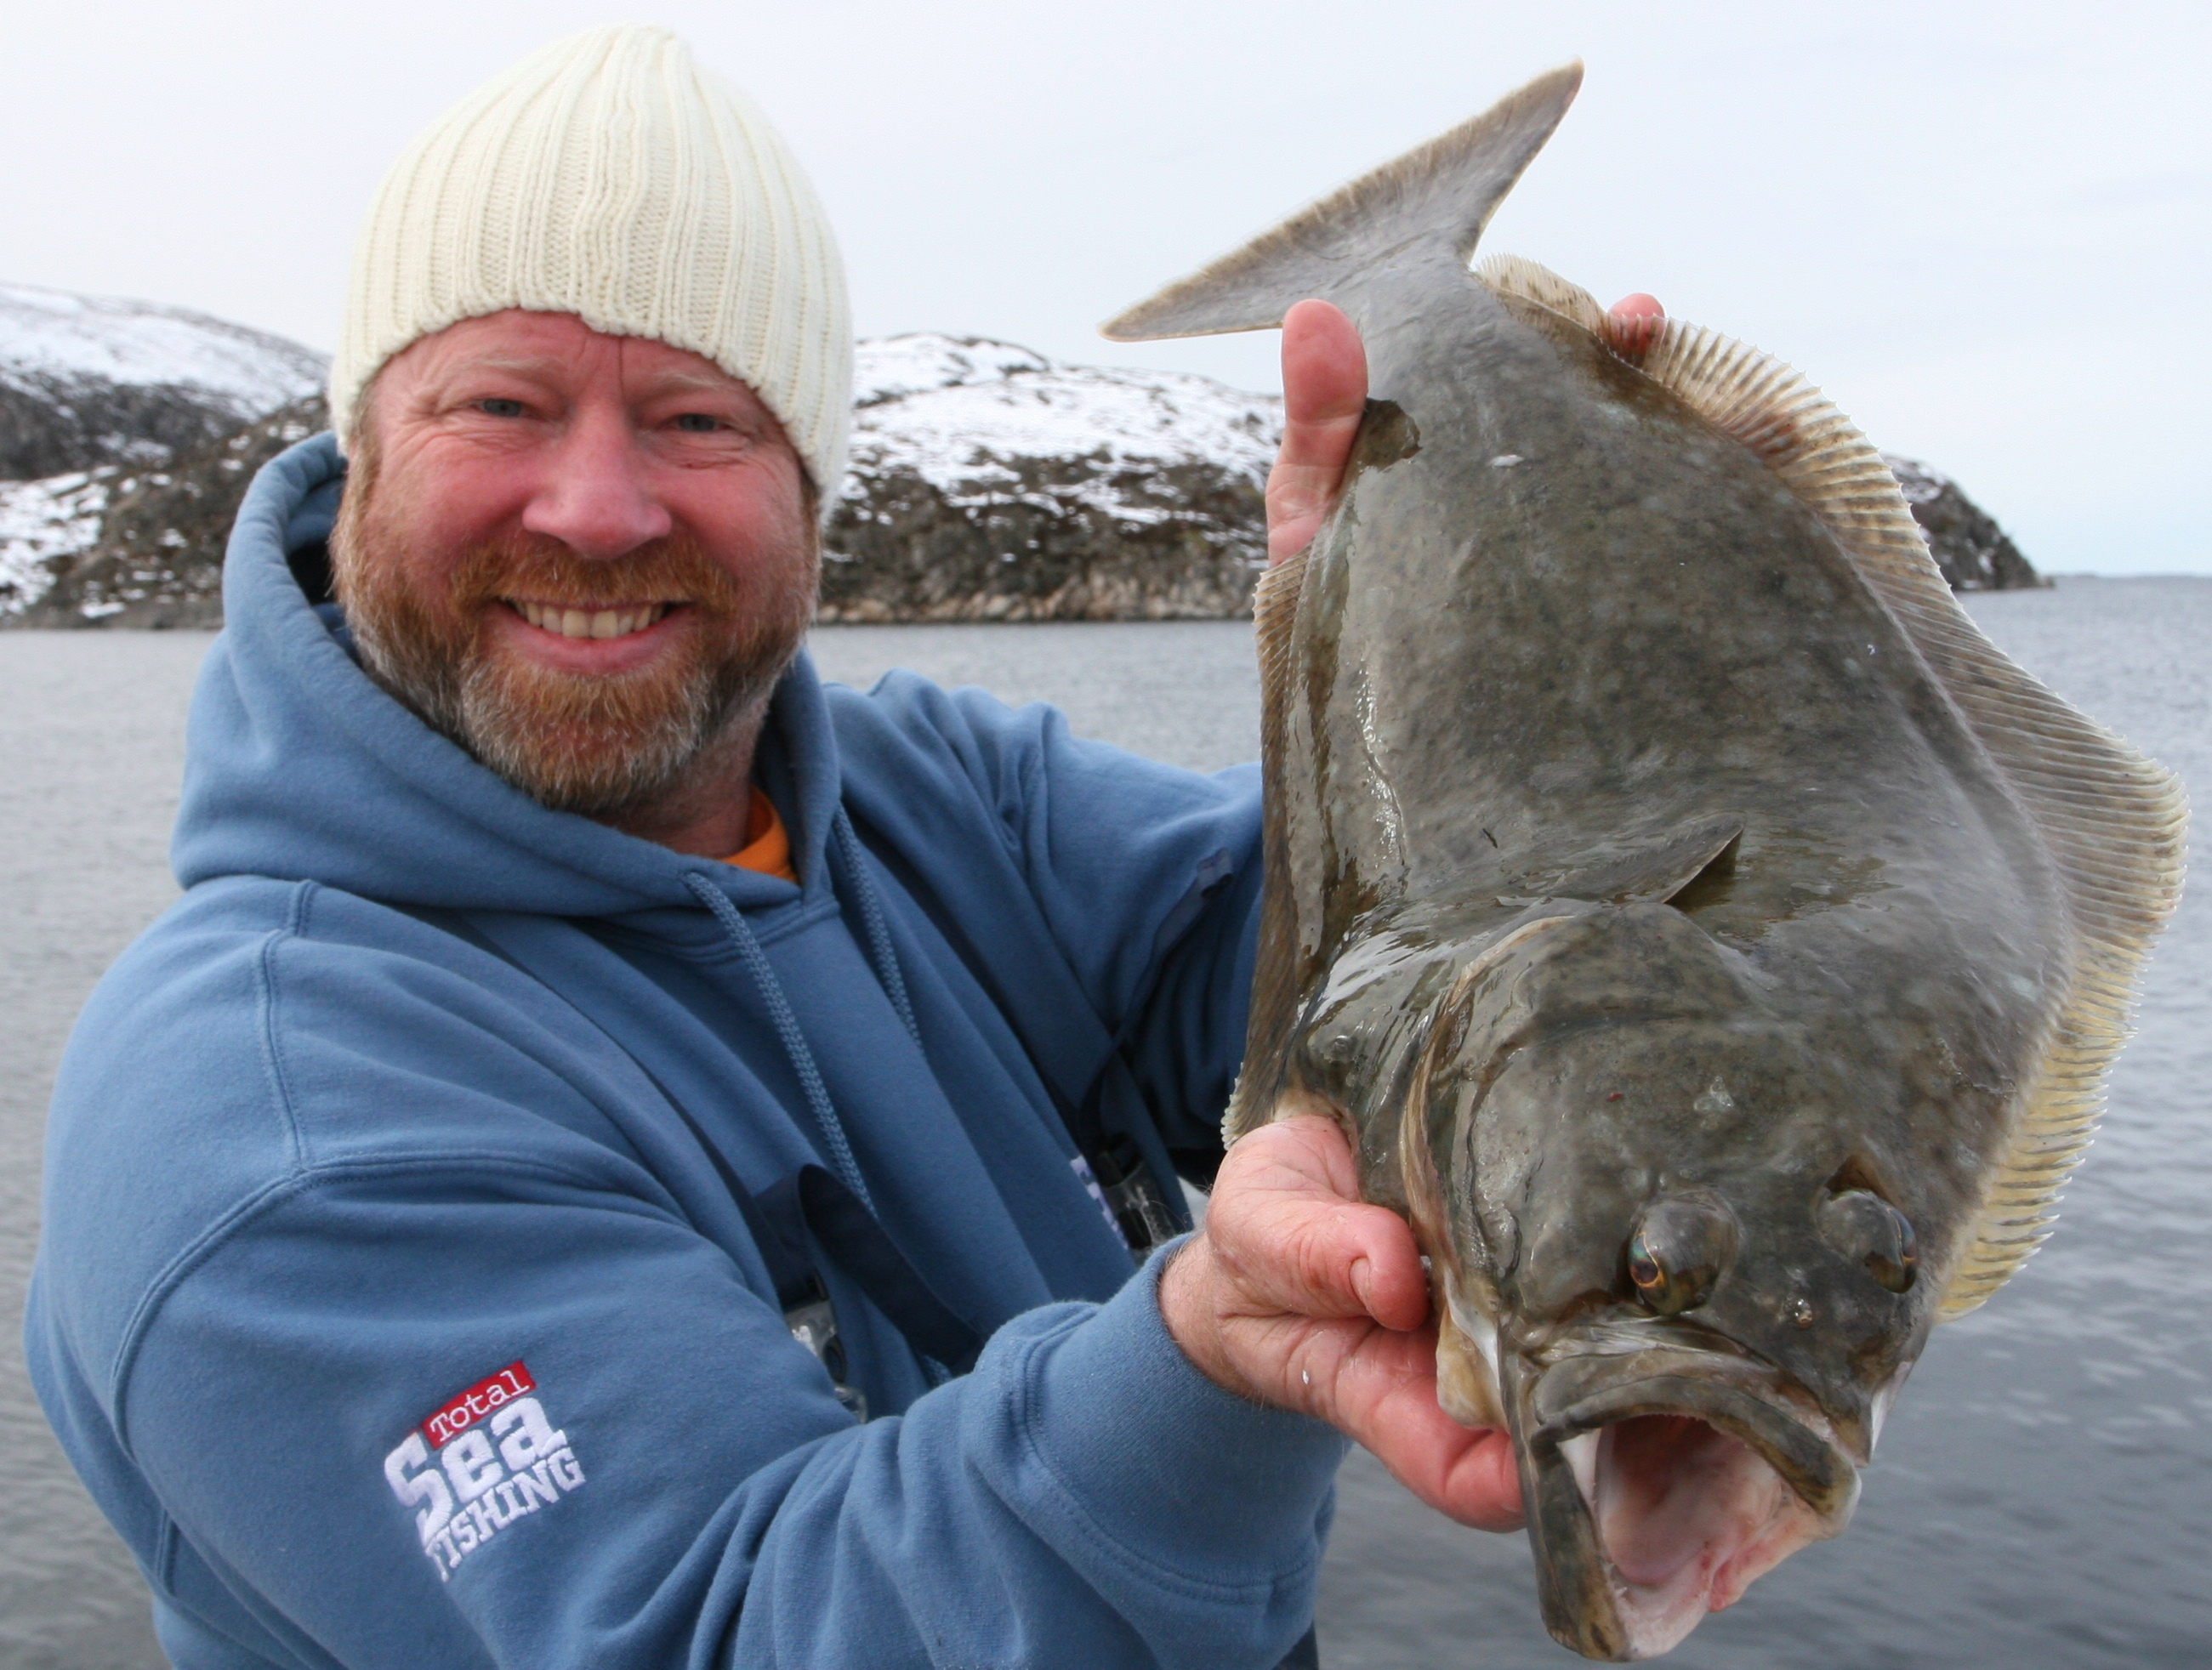 Shore Fishing Tips for Norway